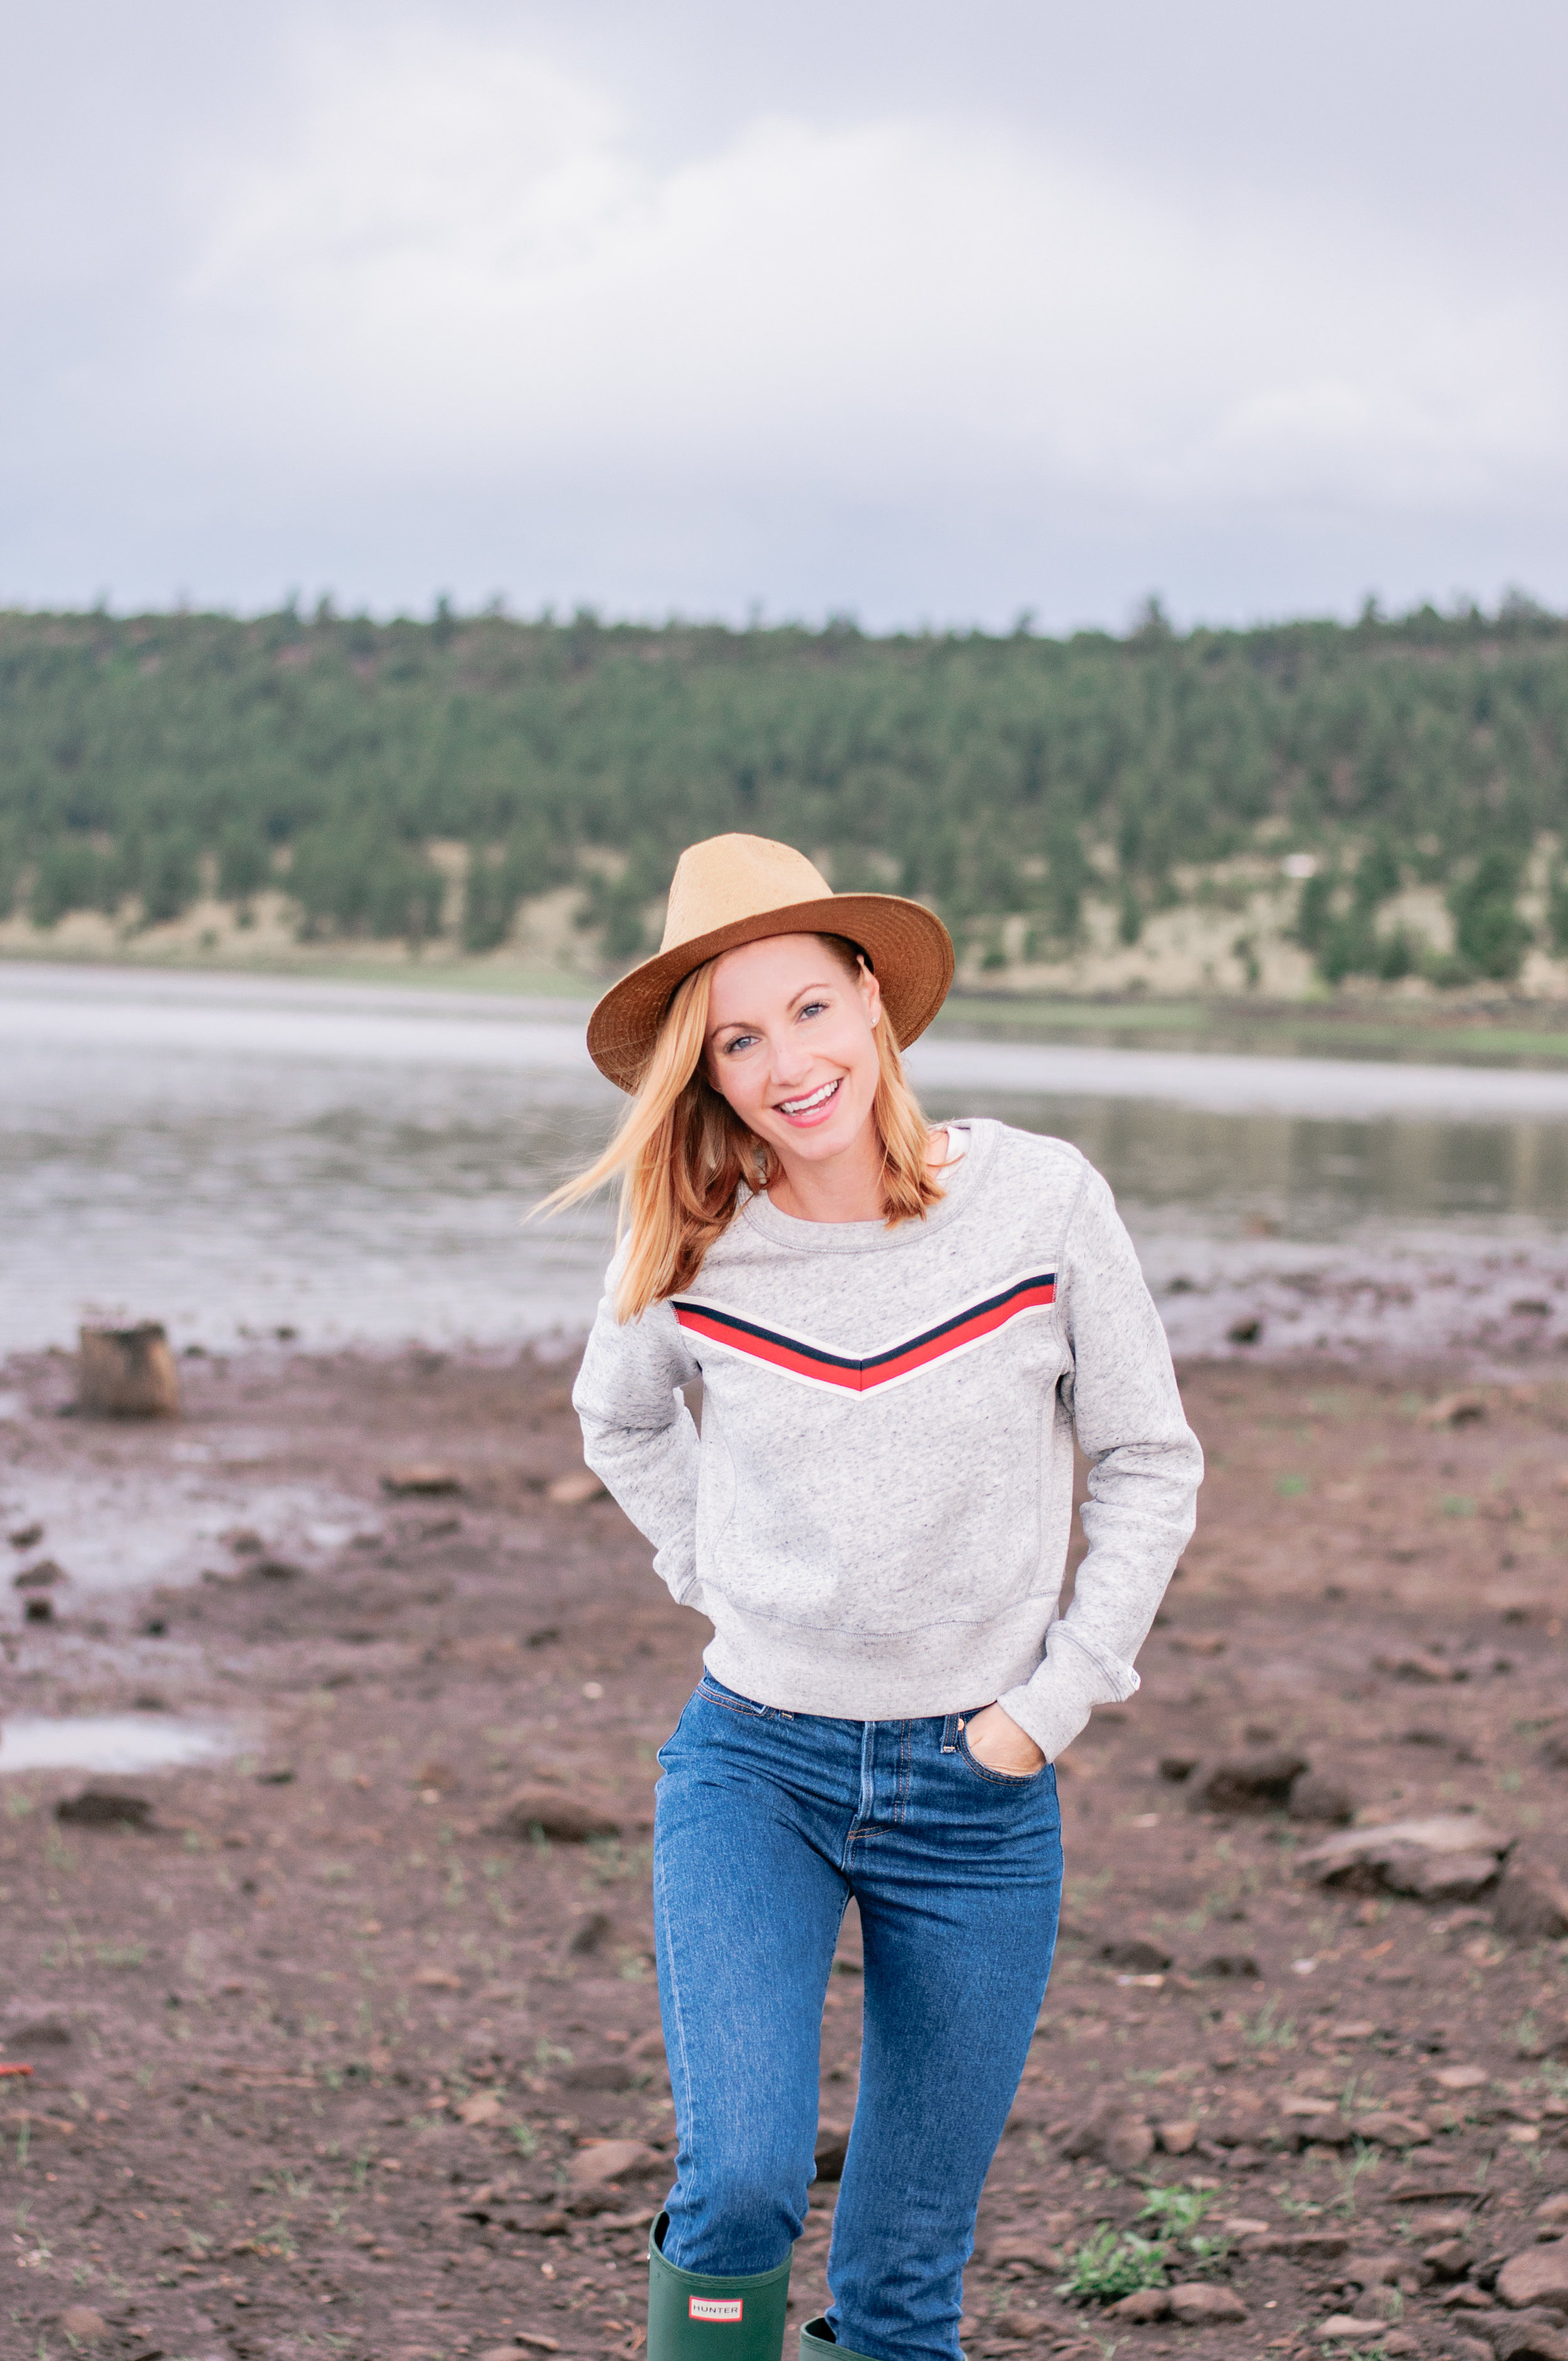 The Tuesday 10: Outdoor Clothing Favorites Love and Specs